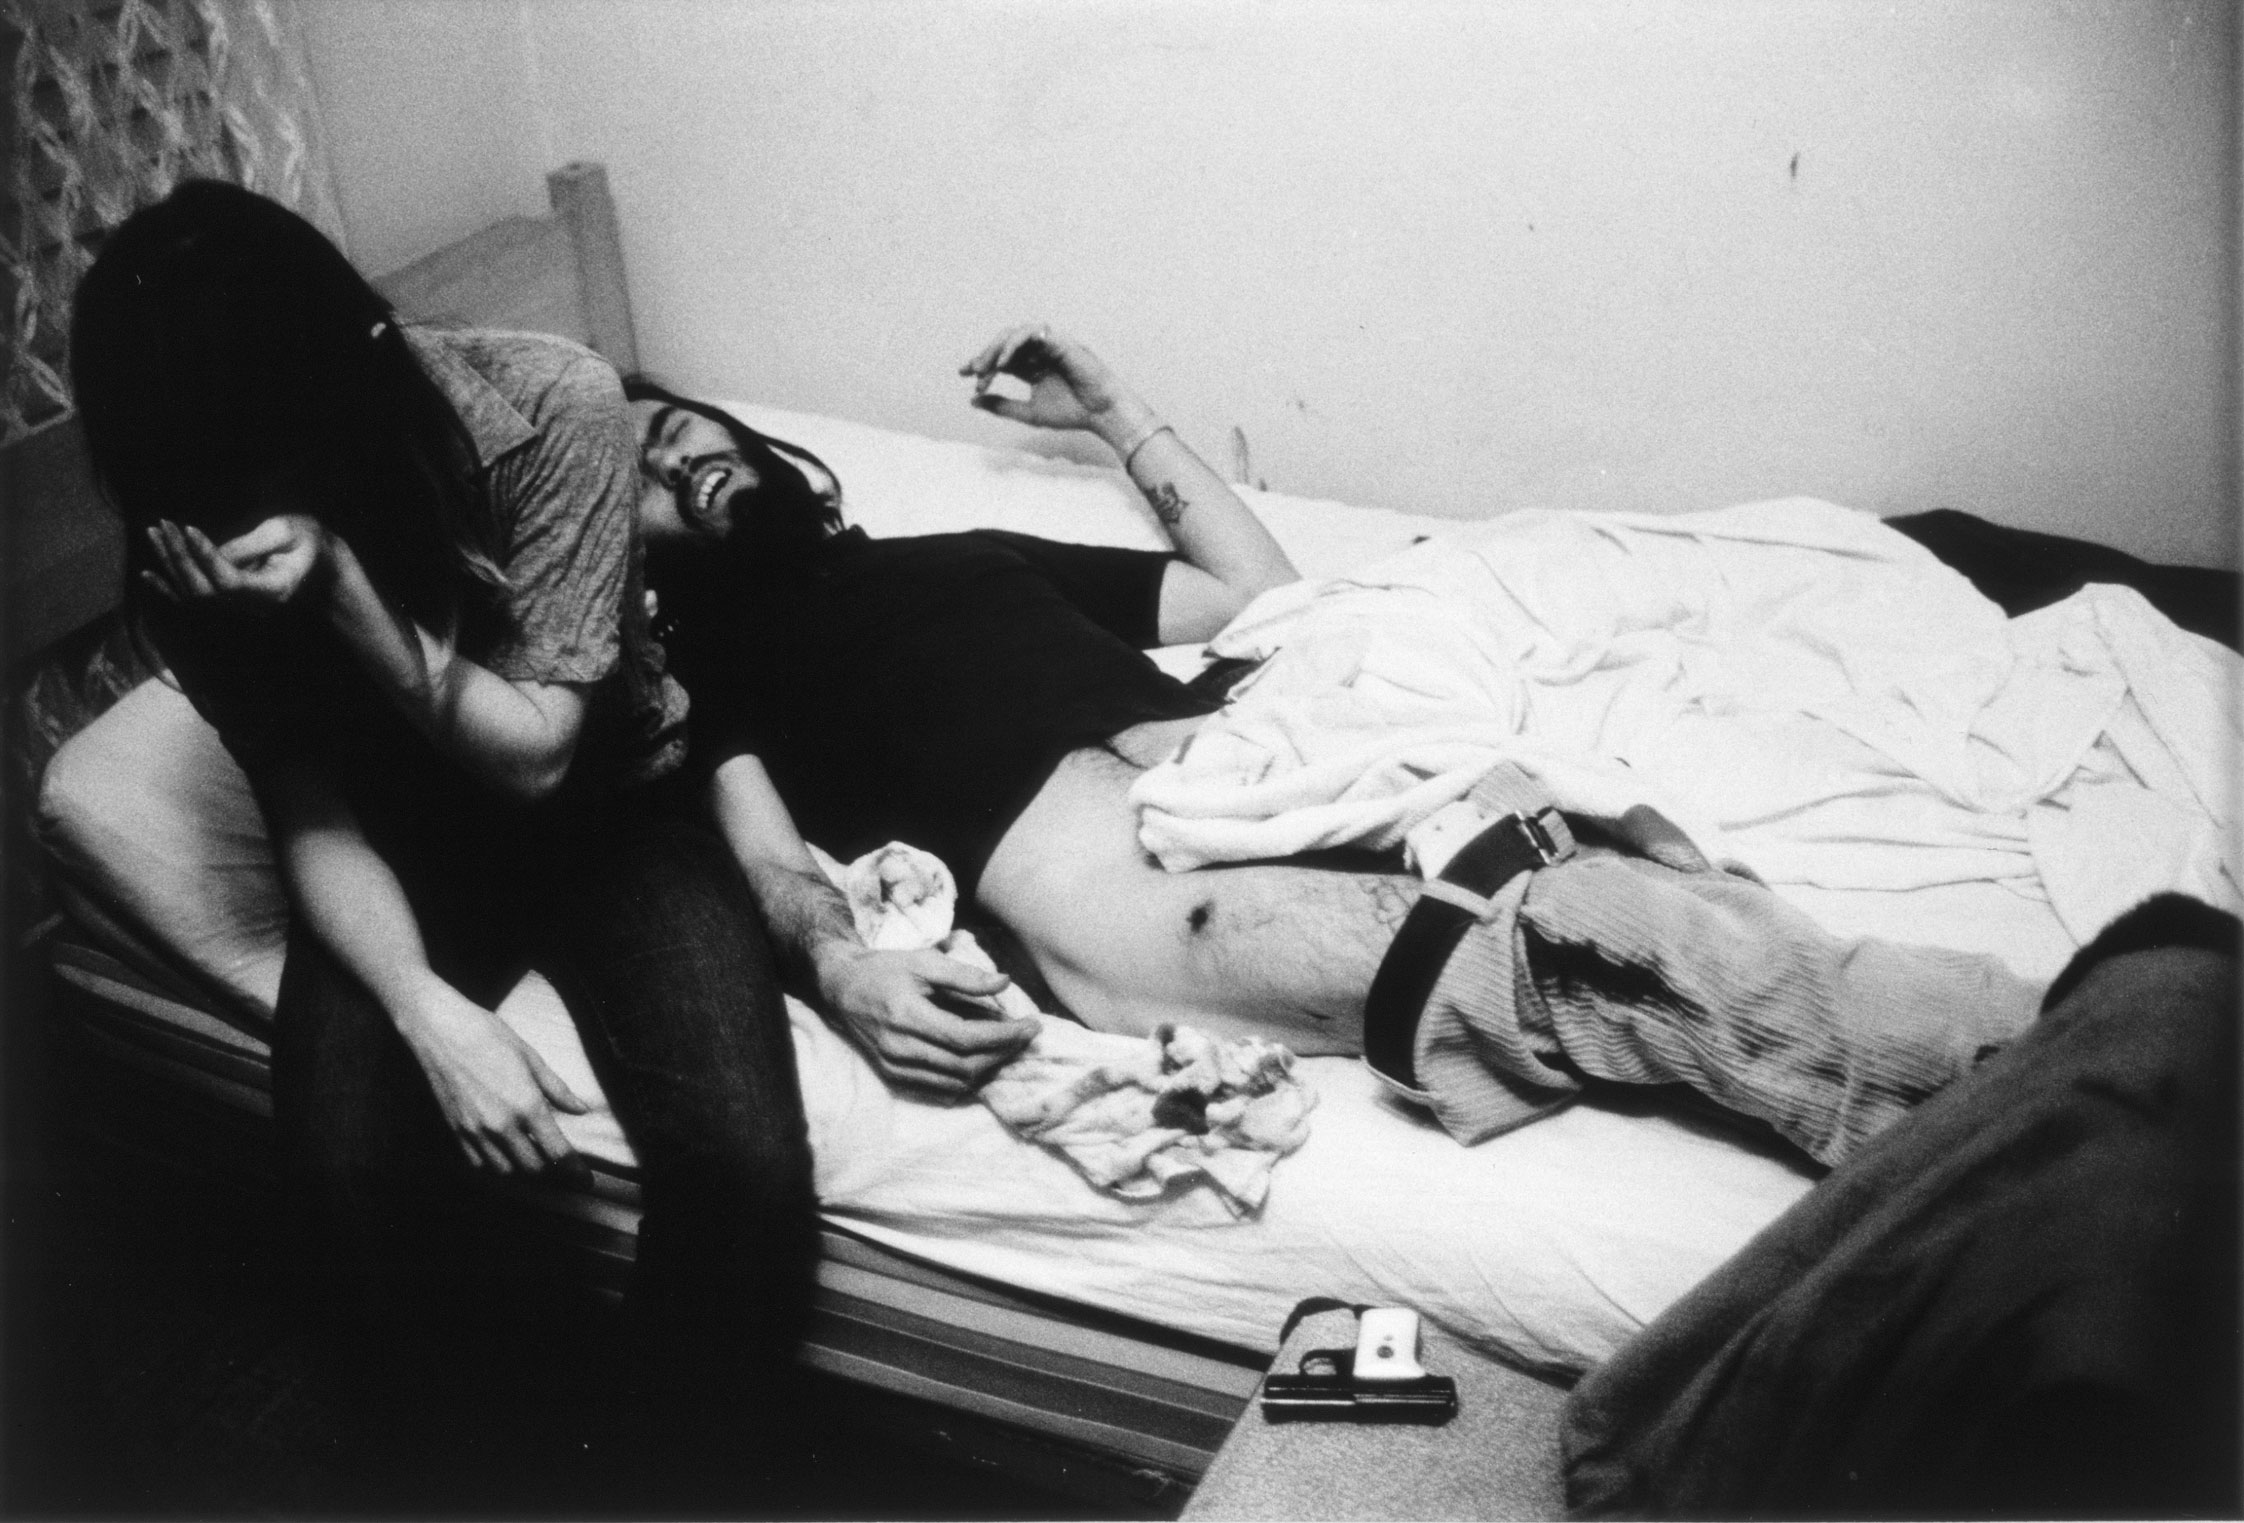 Accidental Gunshot Wound, 1971. Courtesy of Larry Clark, Luhring Augustine, New York & Simon Lee Gallery, London/Hong Kong.